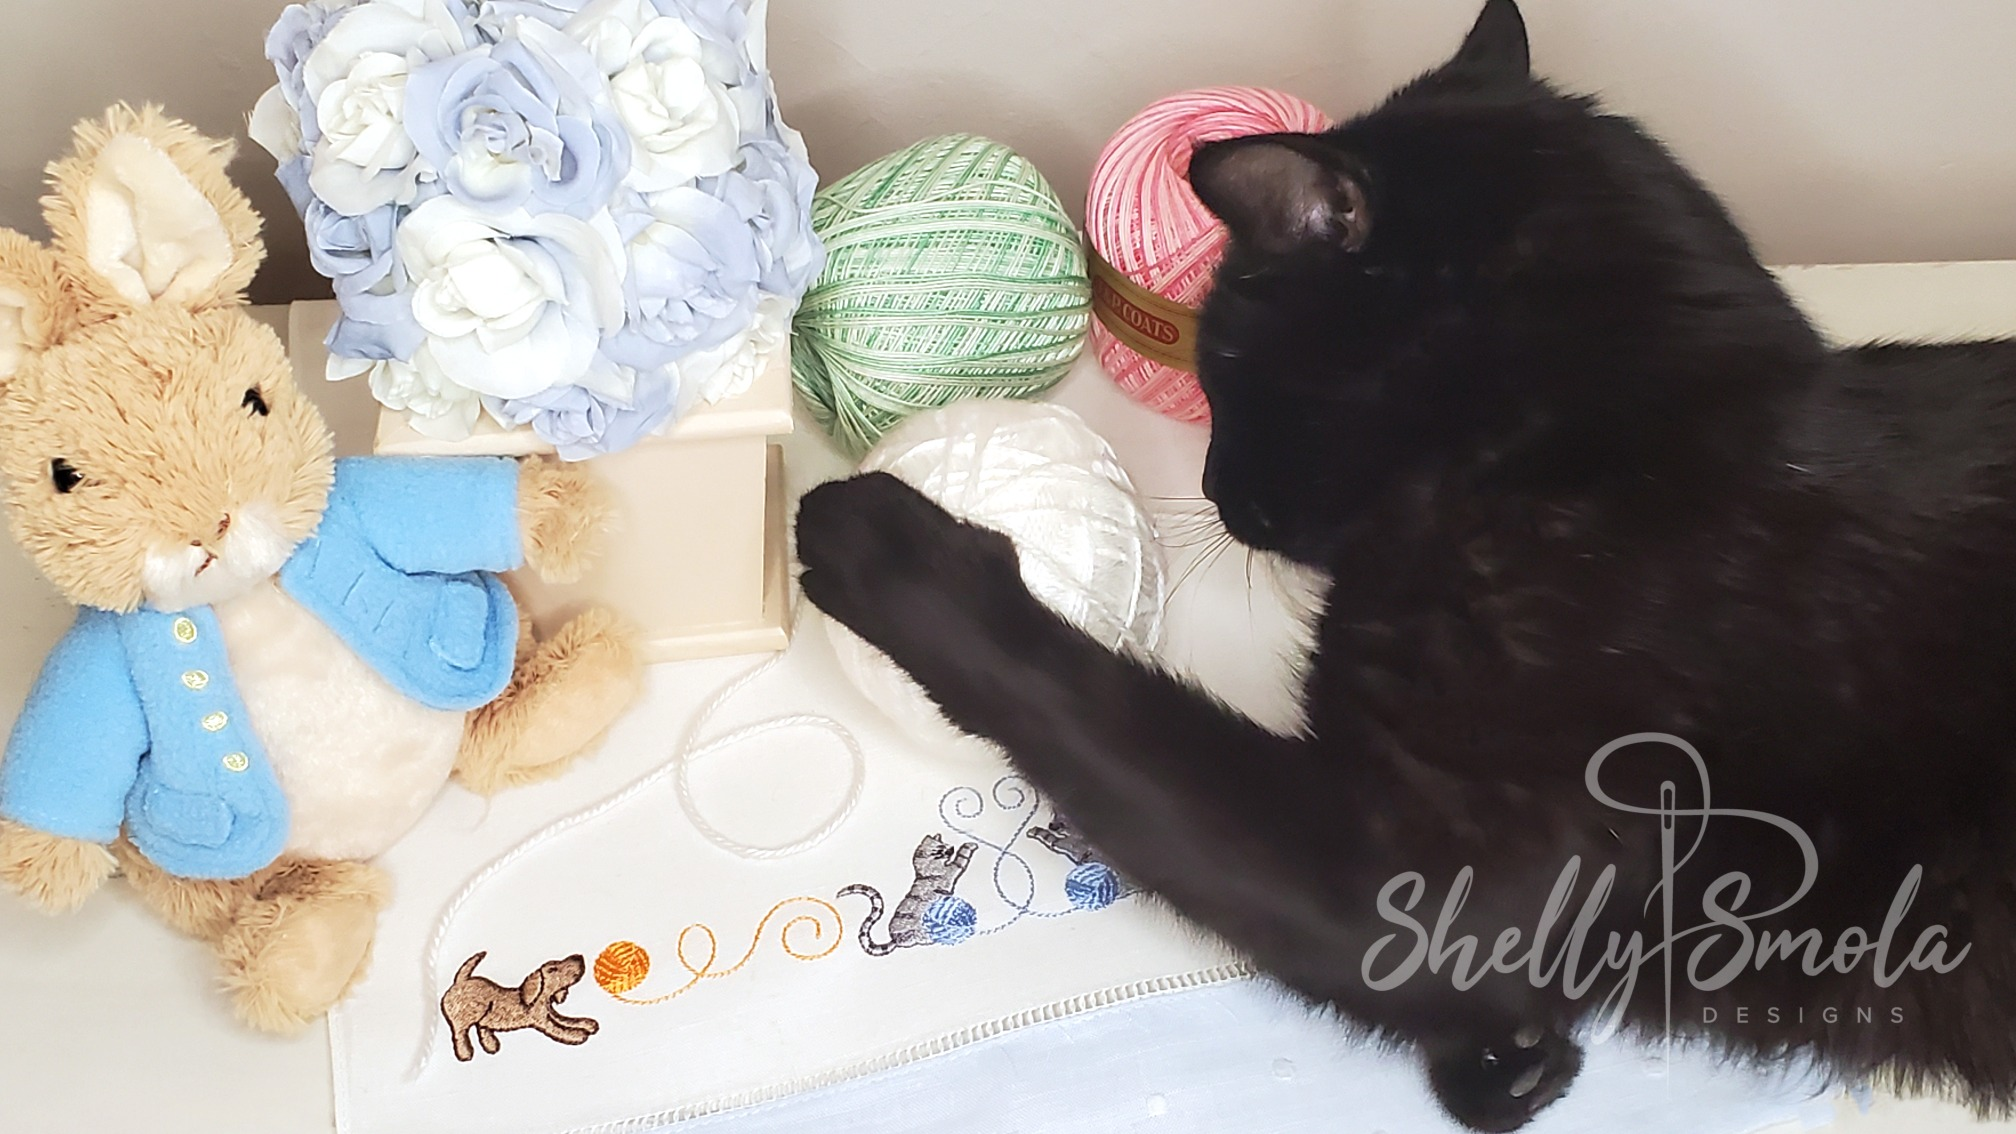 Spooky and the Playful Border by Shelly Smola